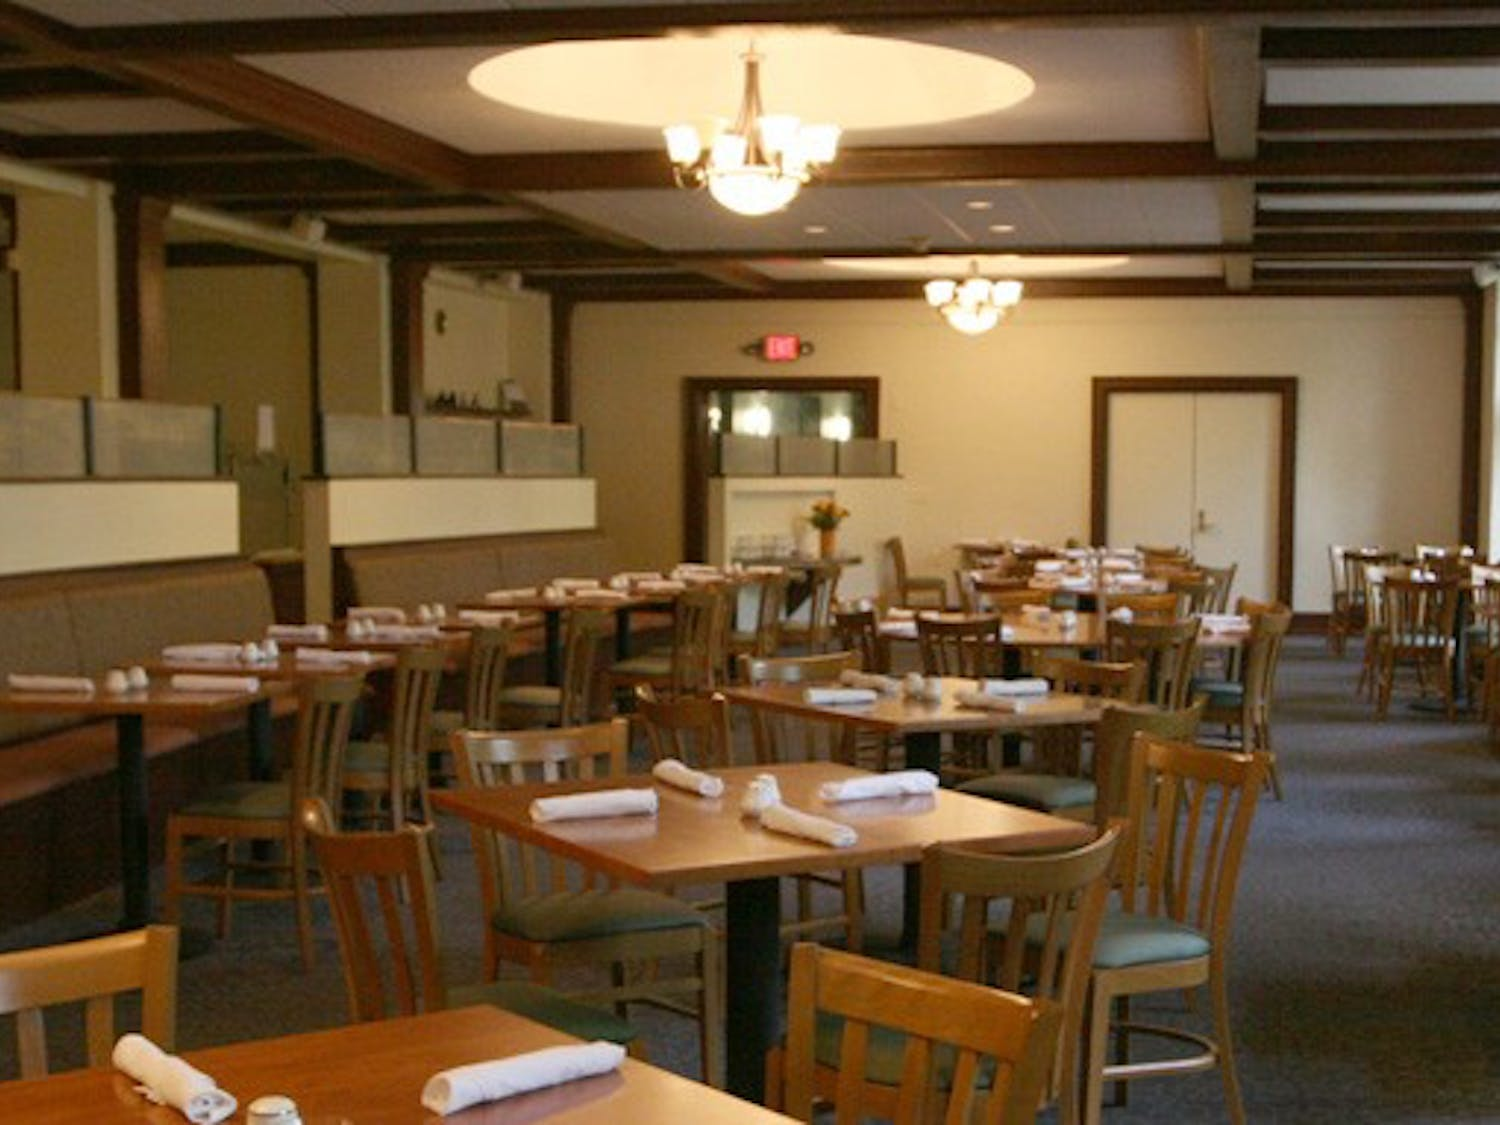 The Faculty Commons will once again host the Faculty Lunch program after budget strains closed its service last year. The eatery provides a calm environment free of excessive noise, students say.